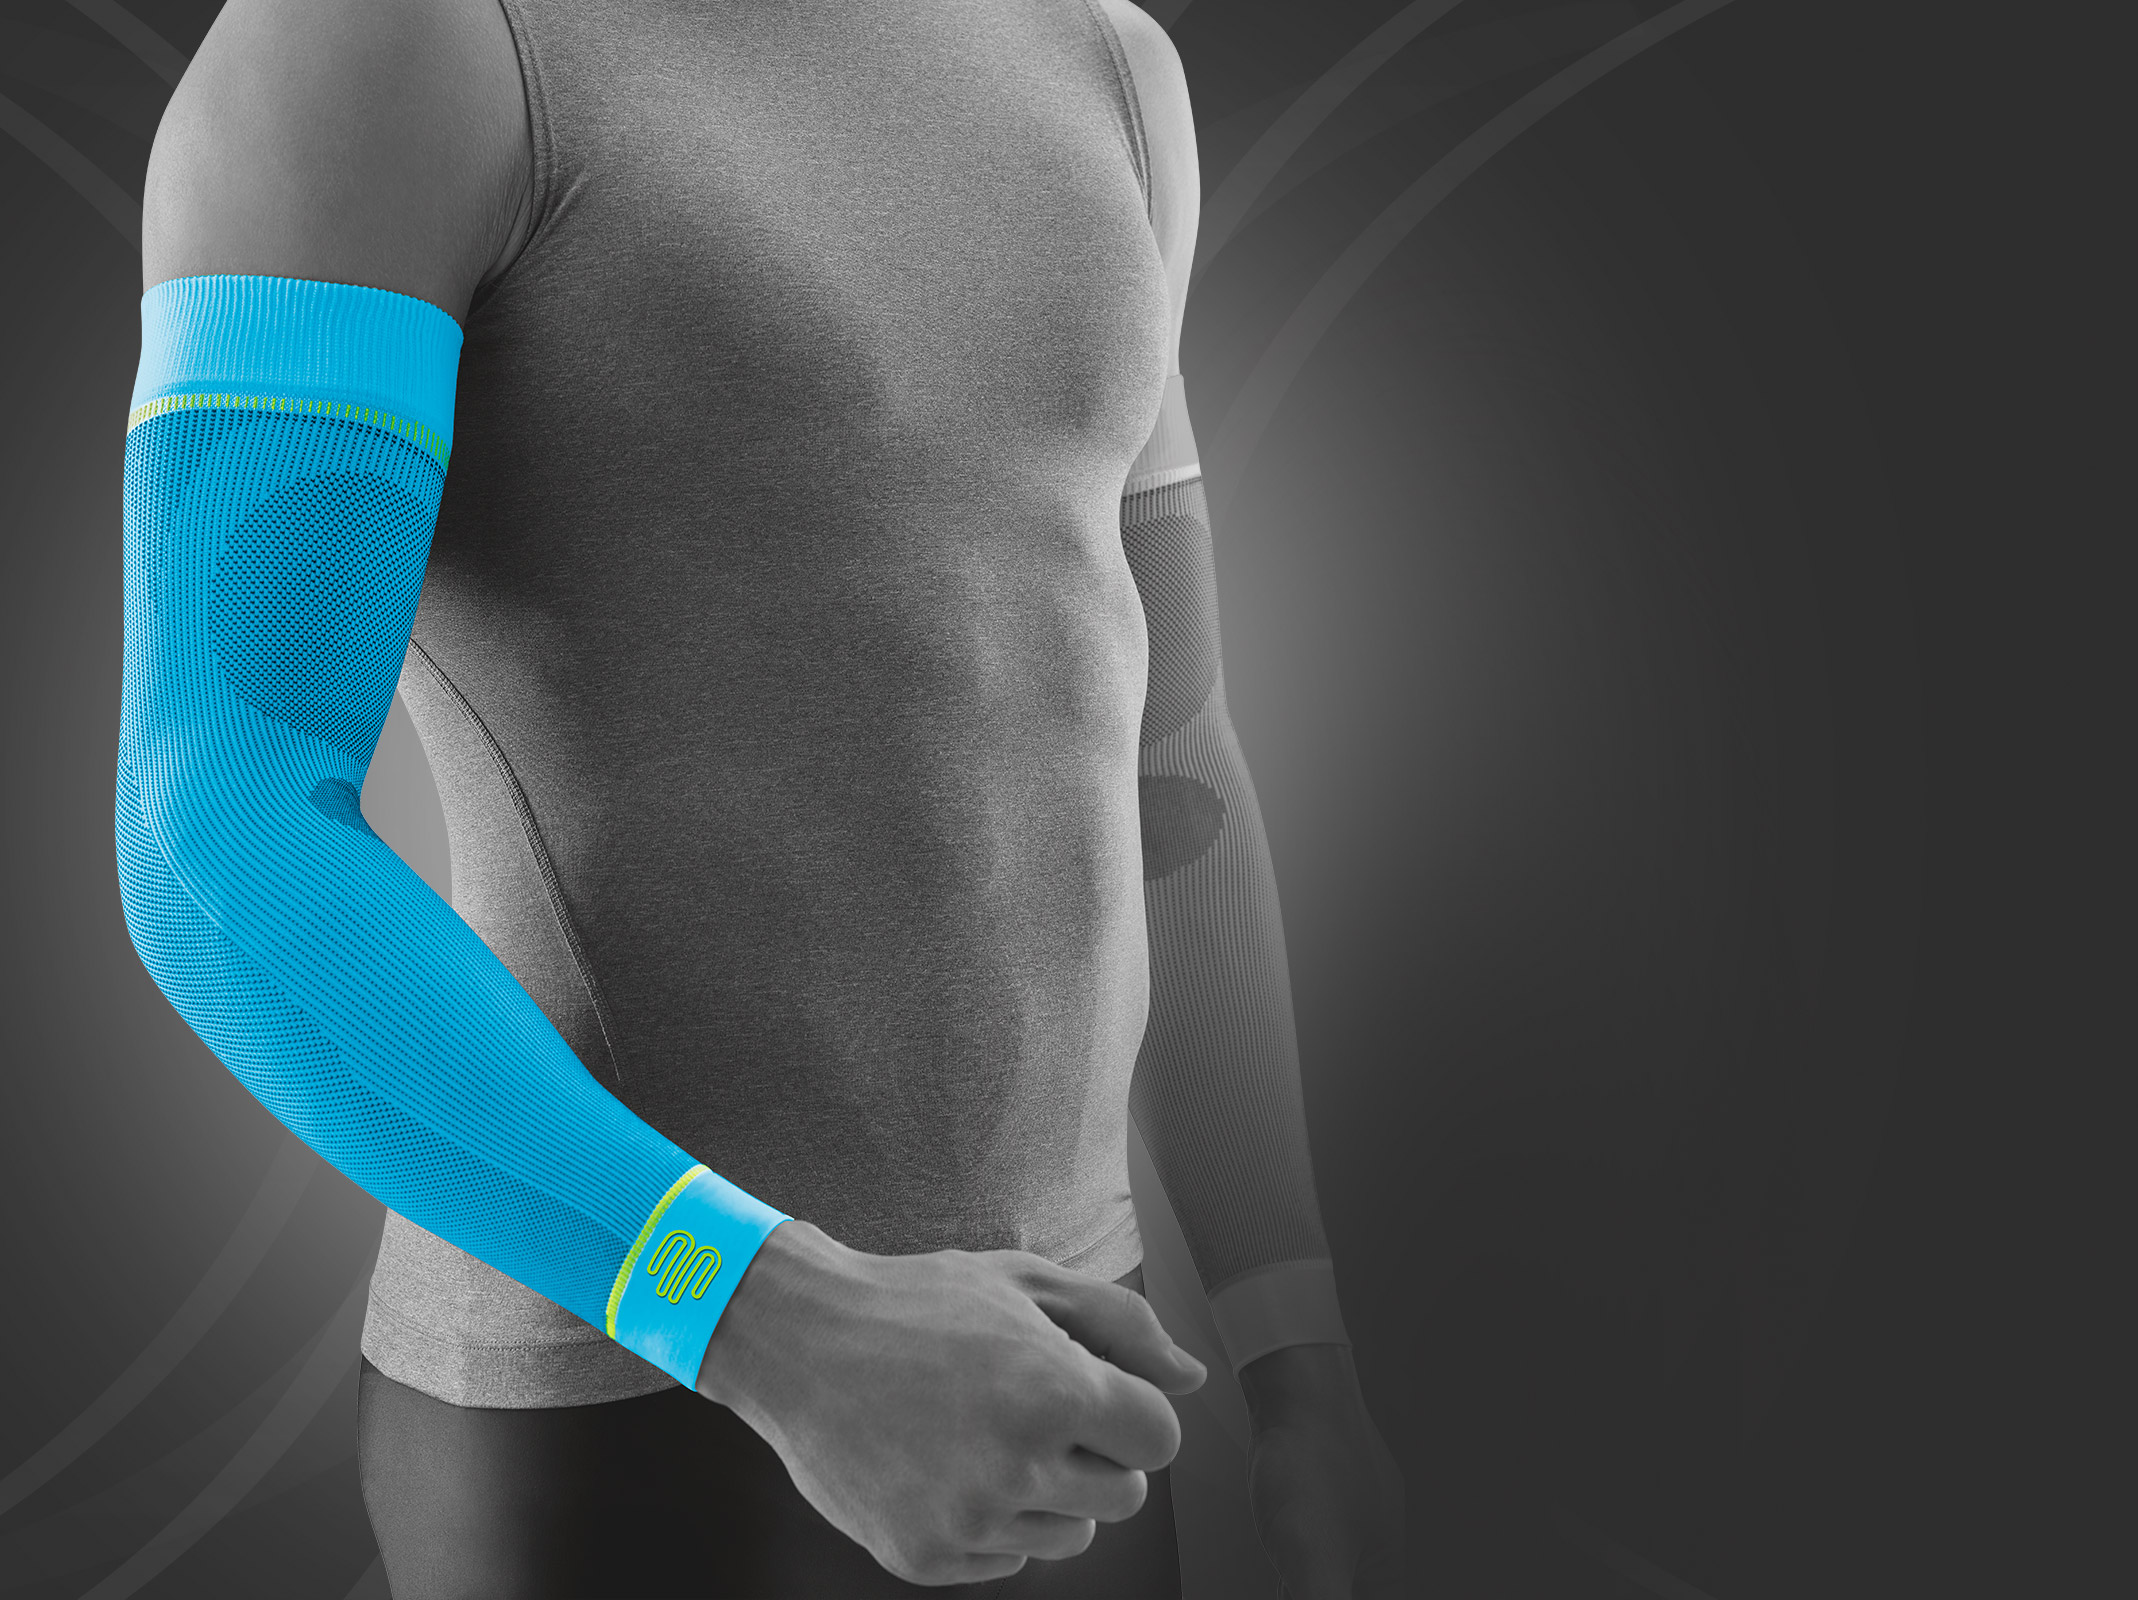 sports compression sleeves arm bauerfeind sports